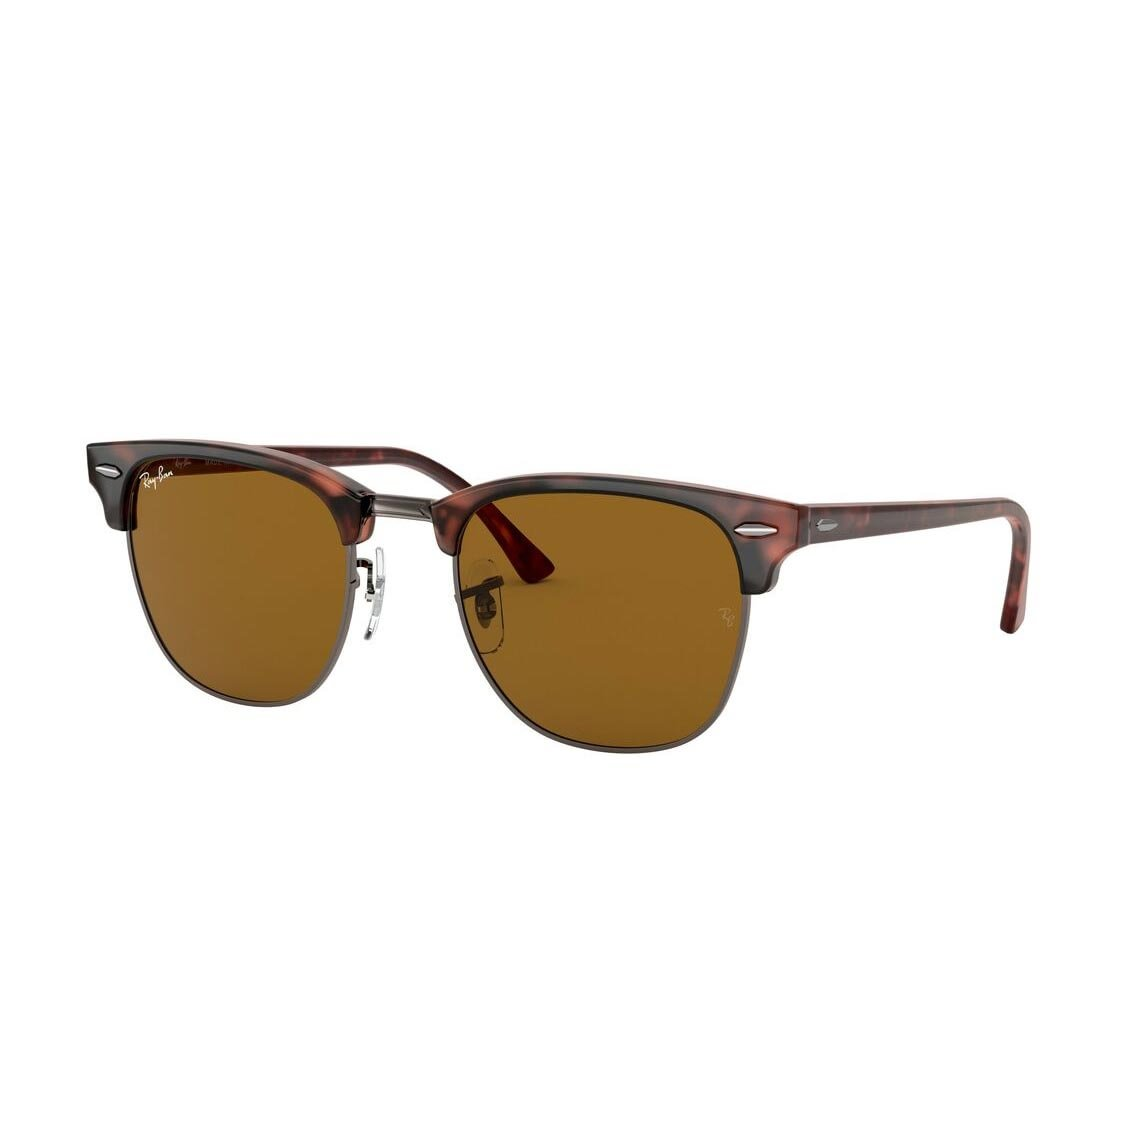 Ray-Ban Clubmaster RB3016 W3388 4921